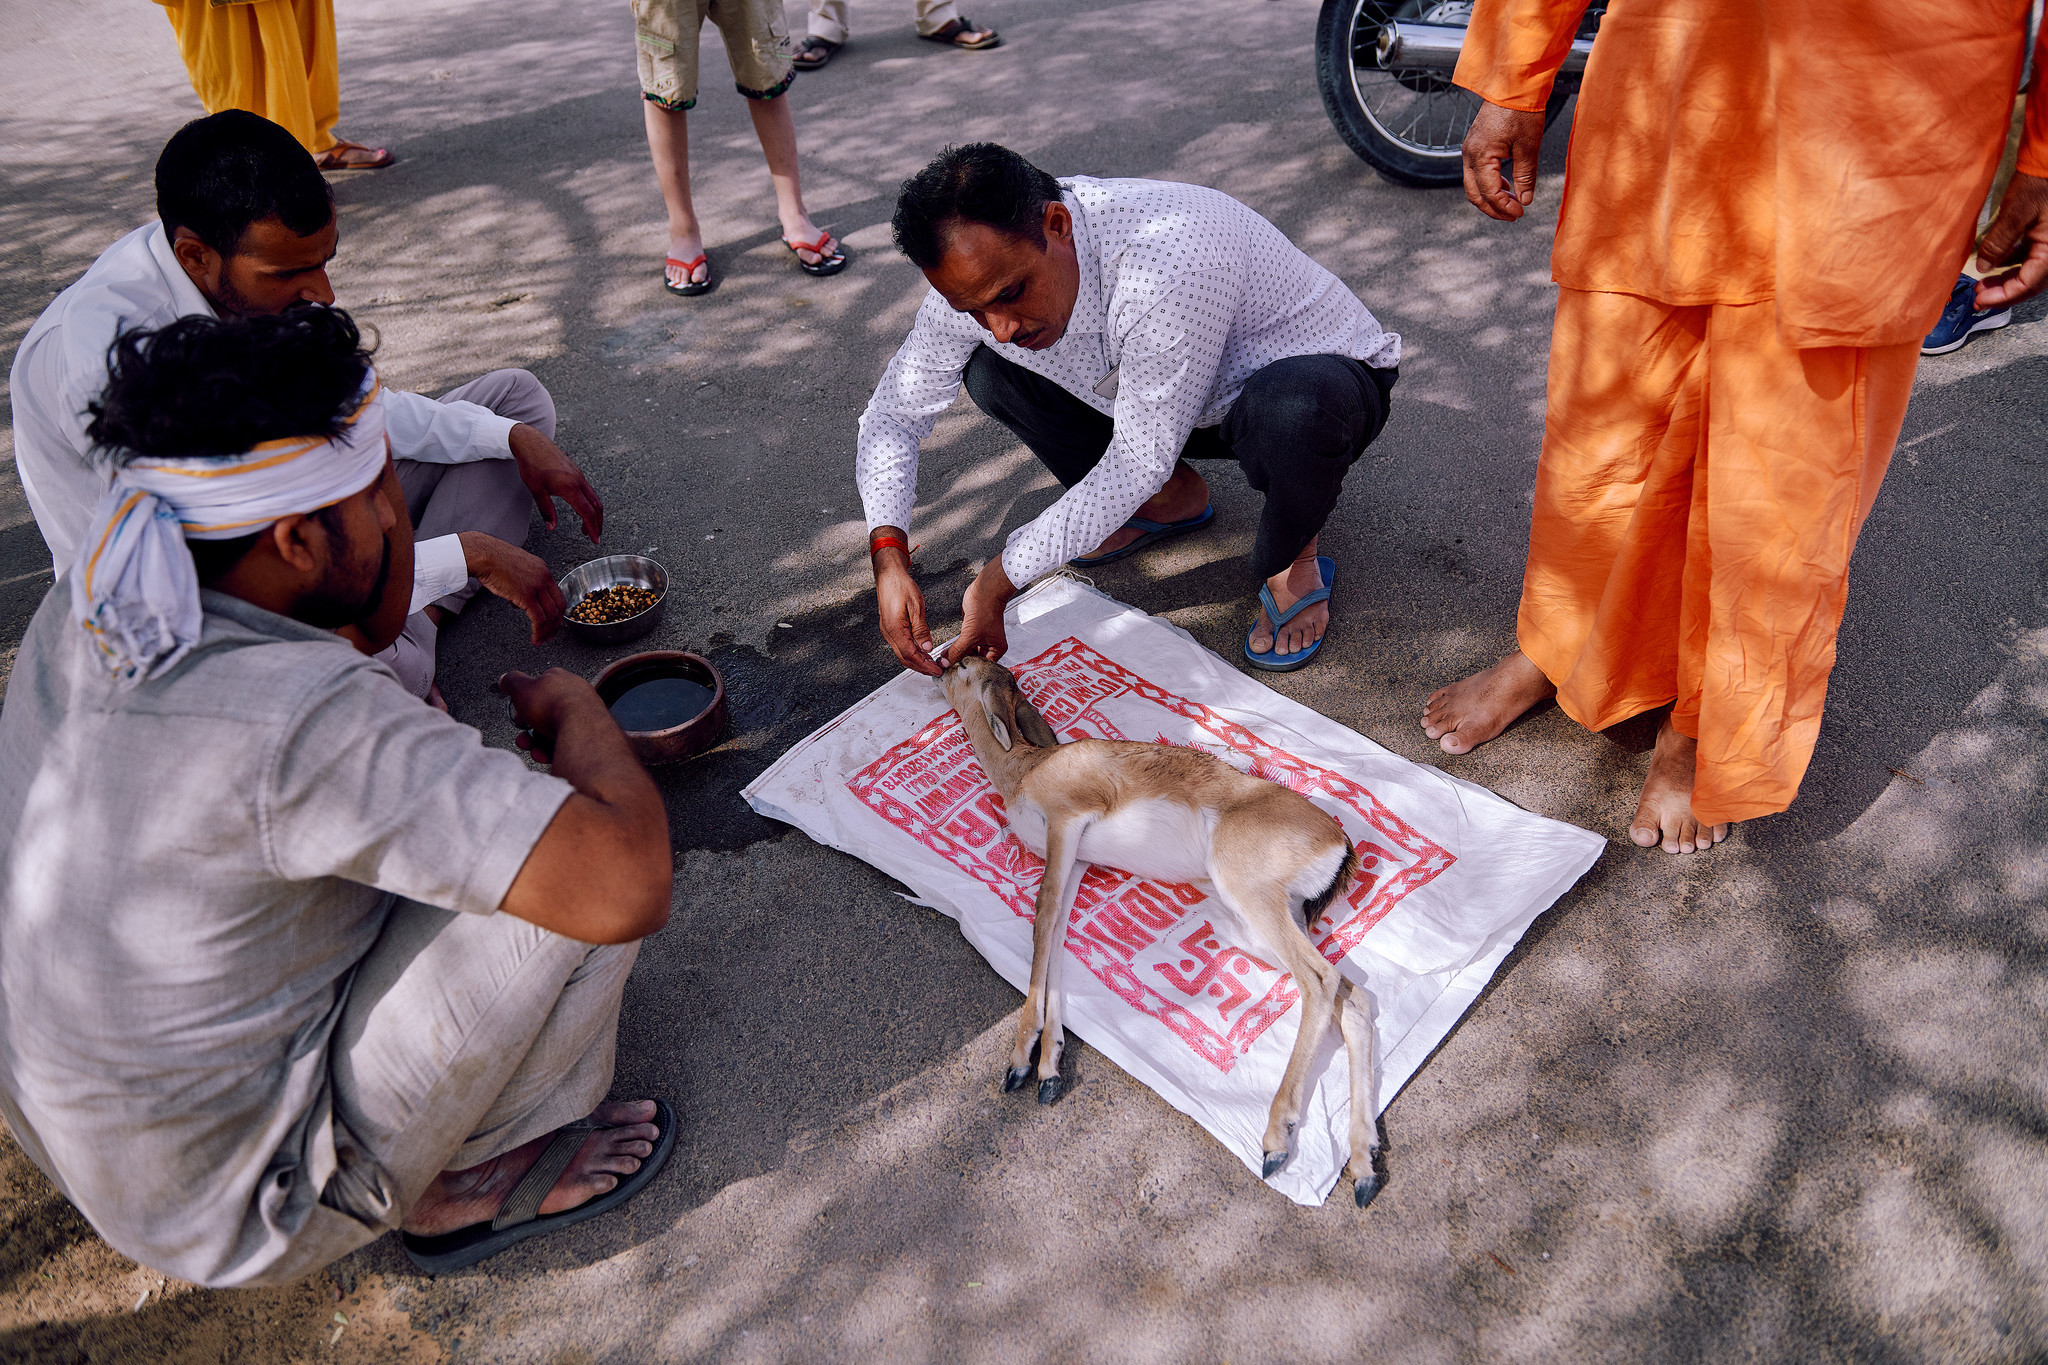 The caretaker feeding water to the sick fawn that just came in at the temple in village Jajiwal near